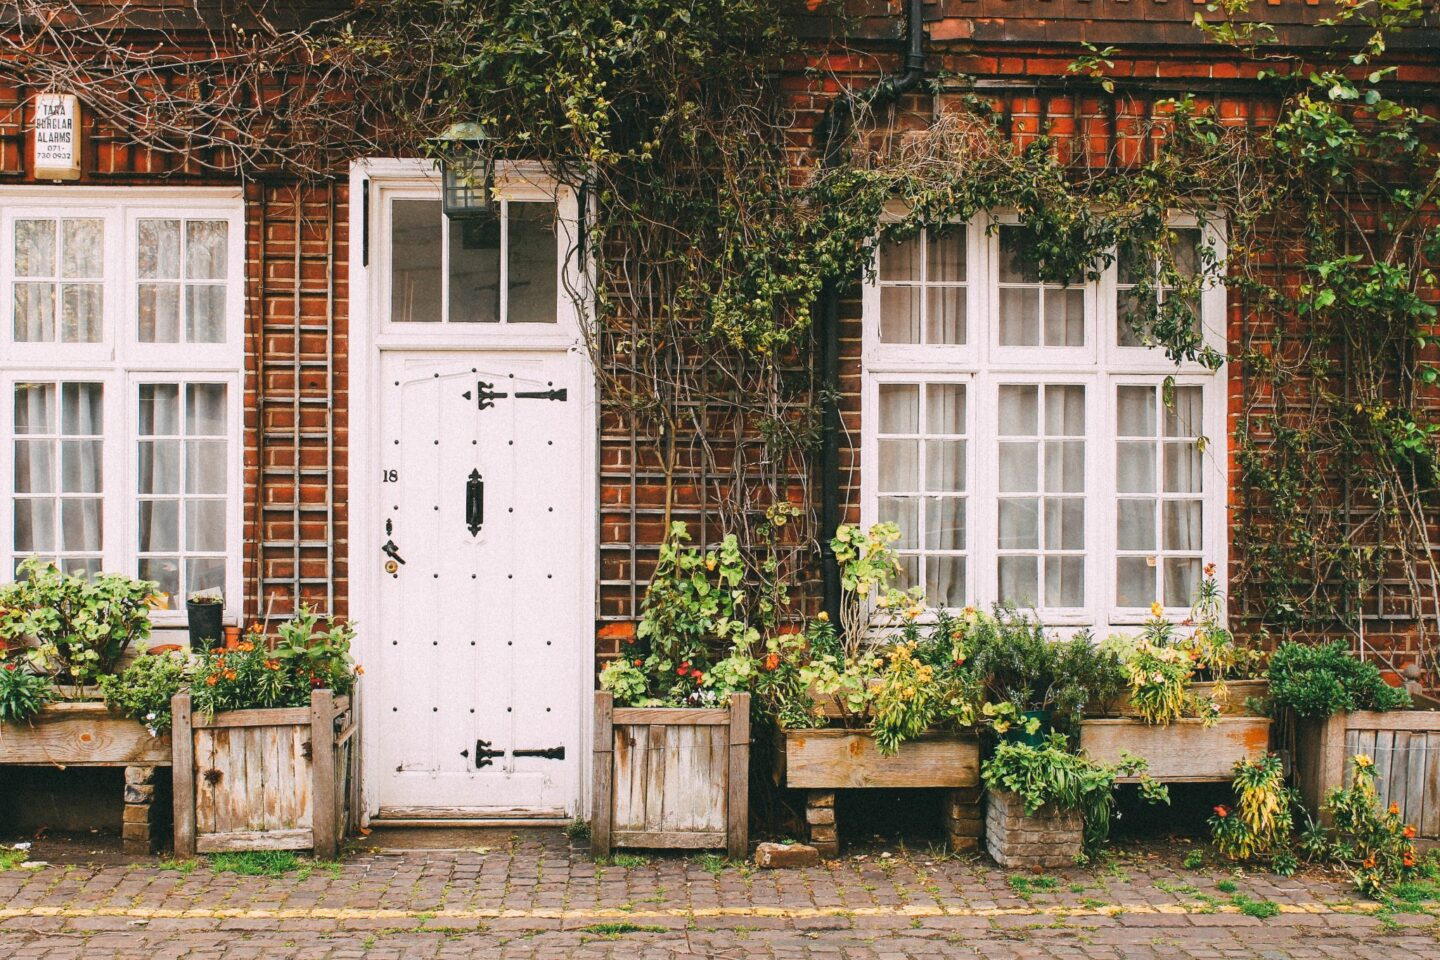 5 Ways To Protect Your Home While Travelling